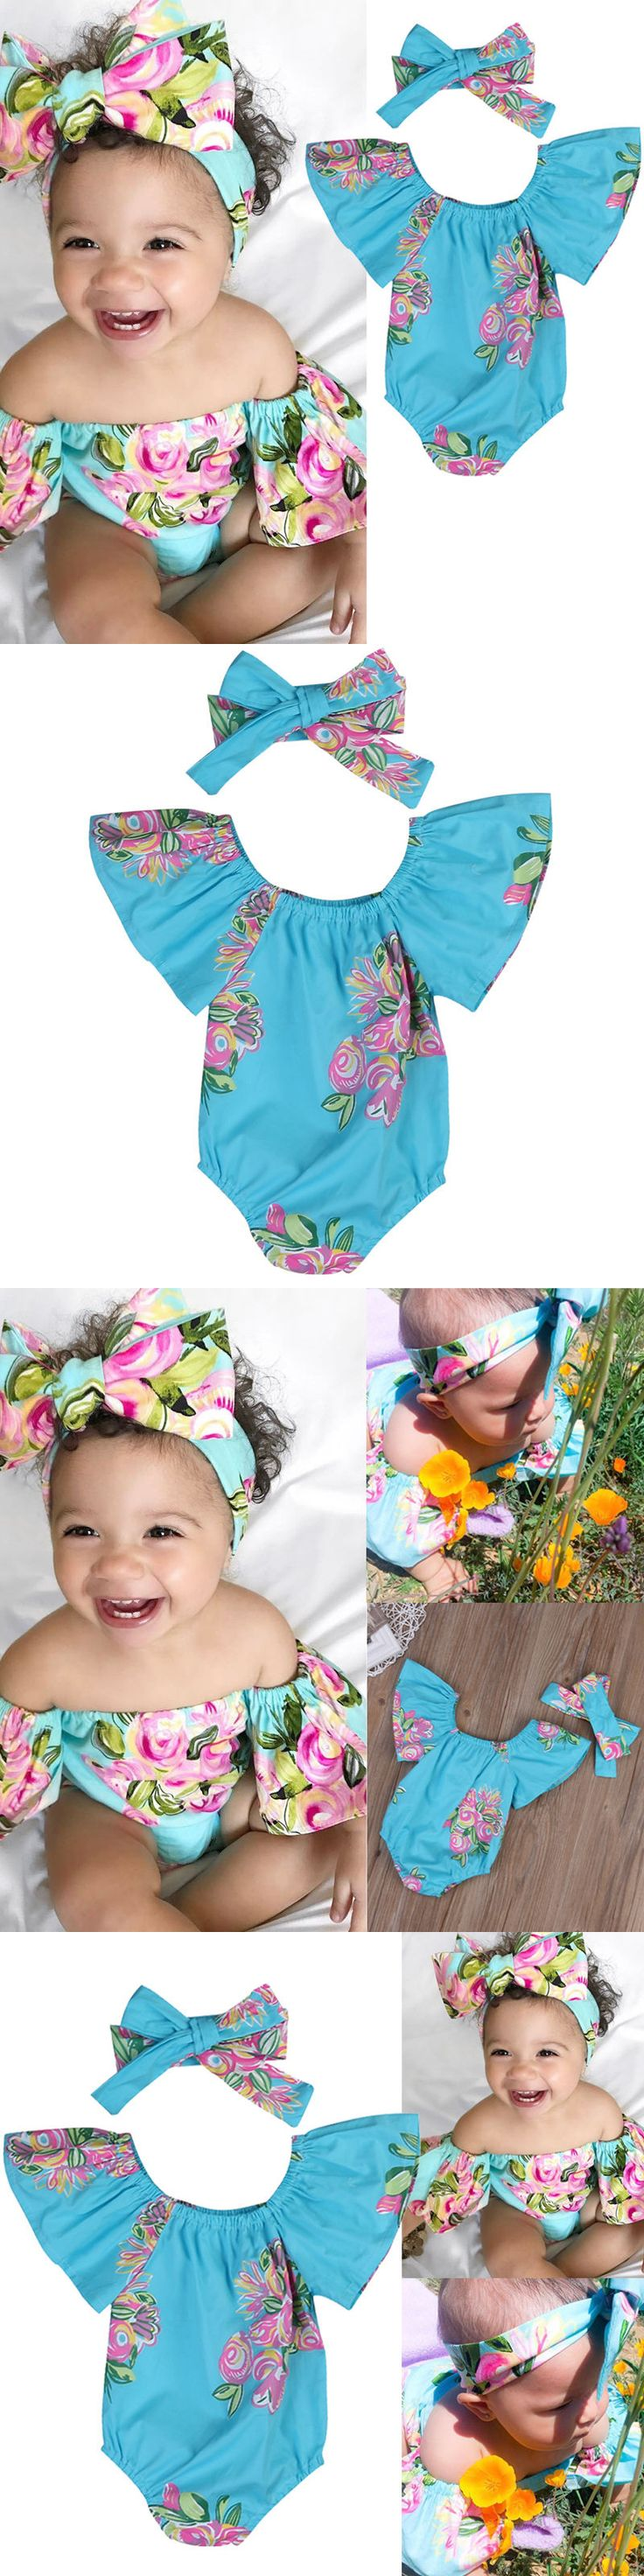 Baby Girls Clothing: Cute Newborn Baby Girl Romper Bodysuit + Headband Outfits Floral Sunsuit Clothes -> BUY IT NOW ONLY: $7.99 on eBay!